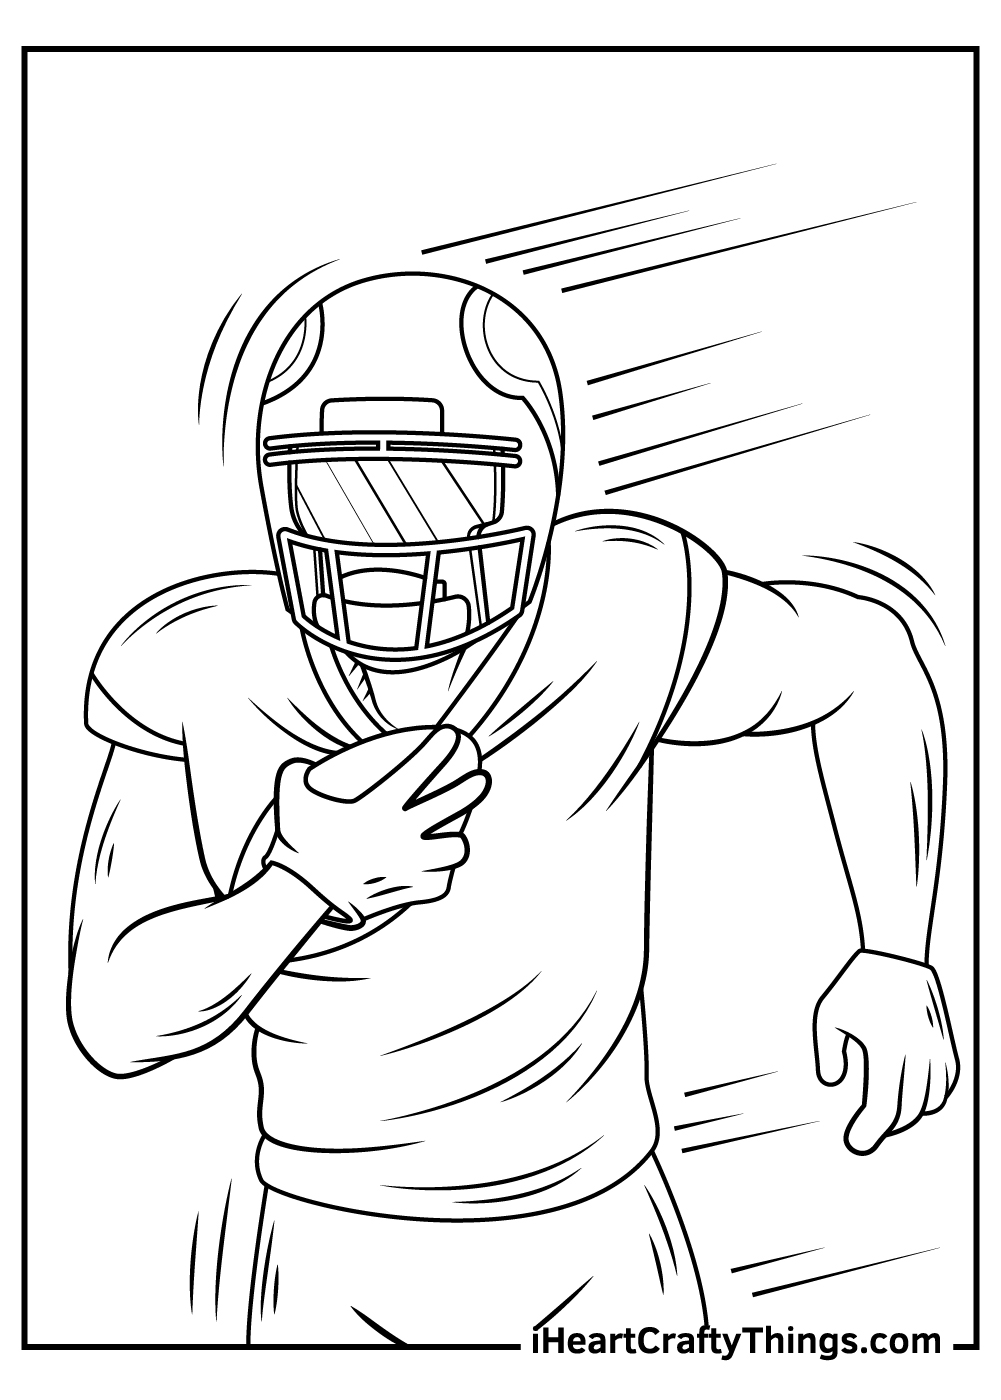 free NFL coloring pages for kids